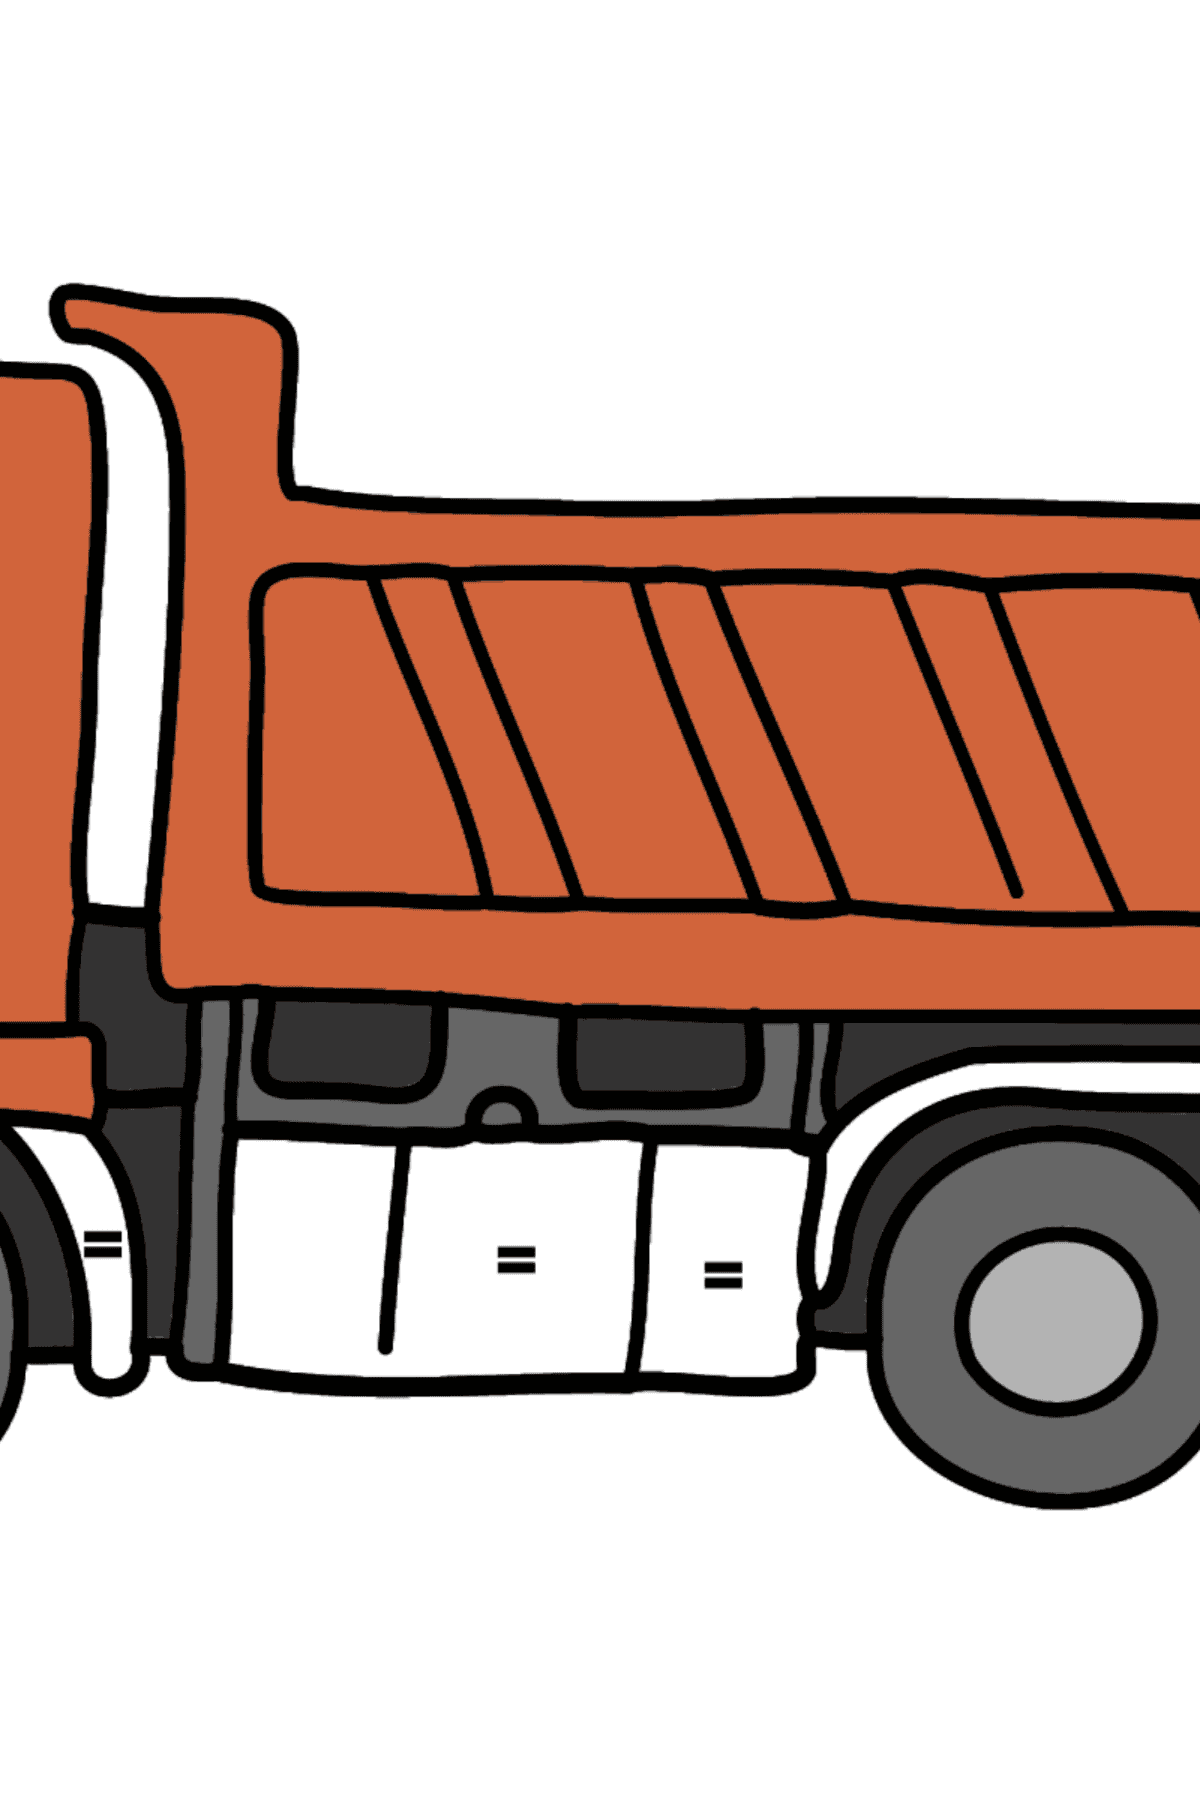 Coloring Page - A Dump Truck - Coloring by Symbols for Kids